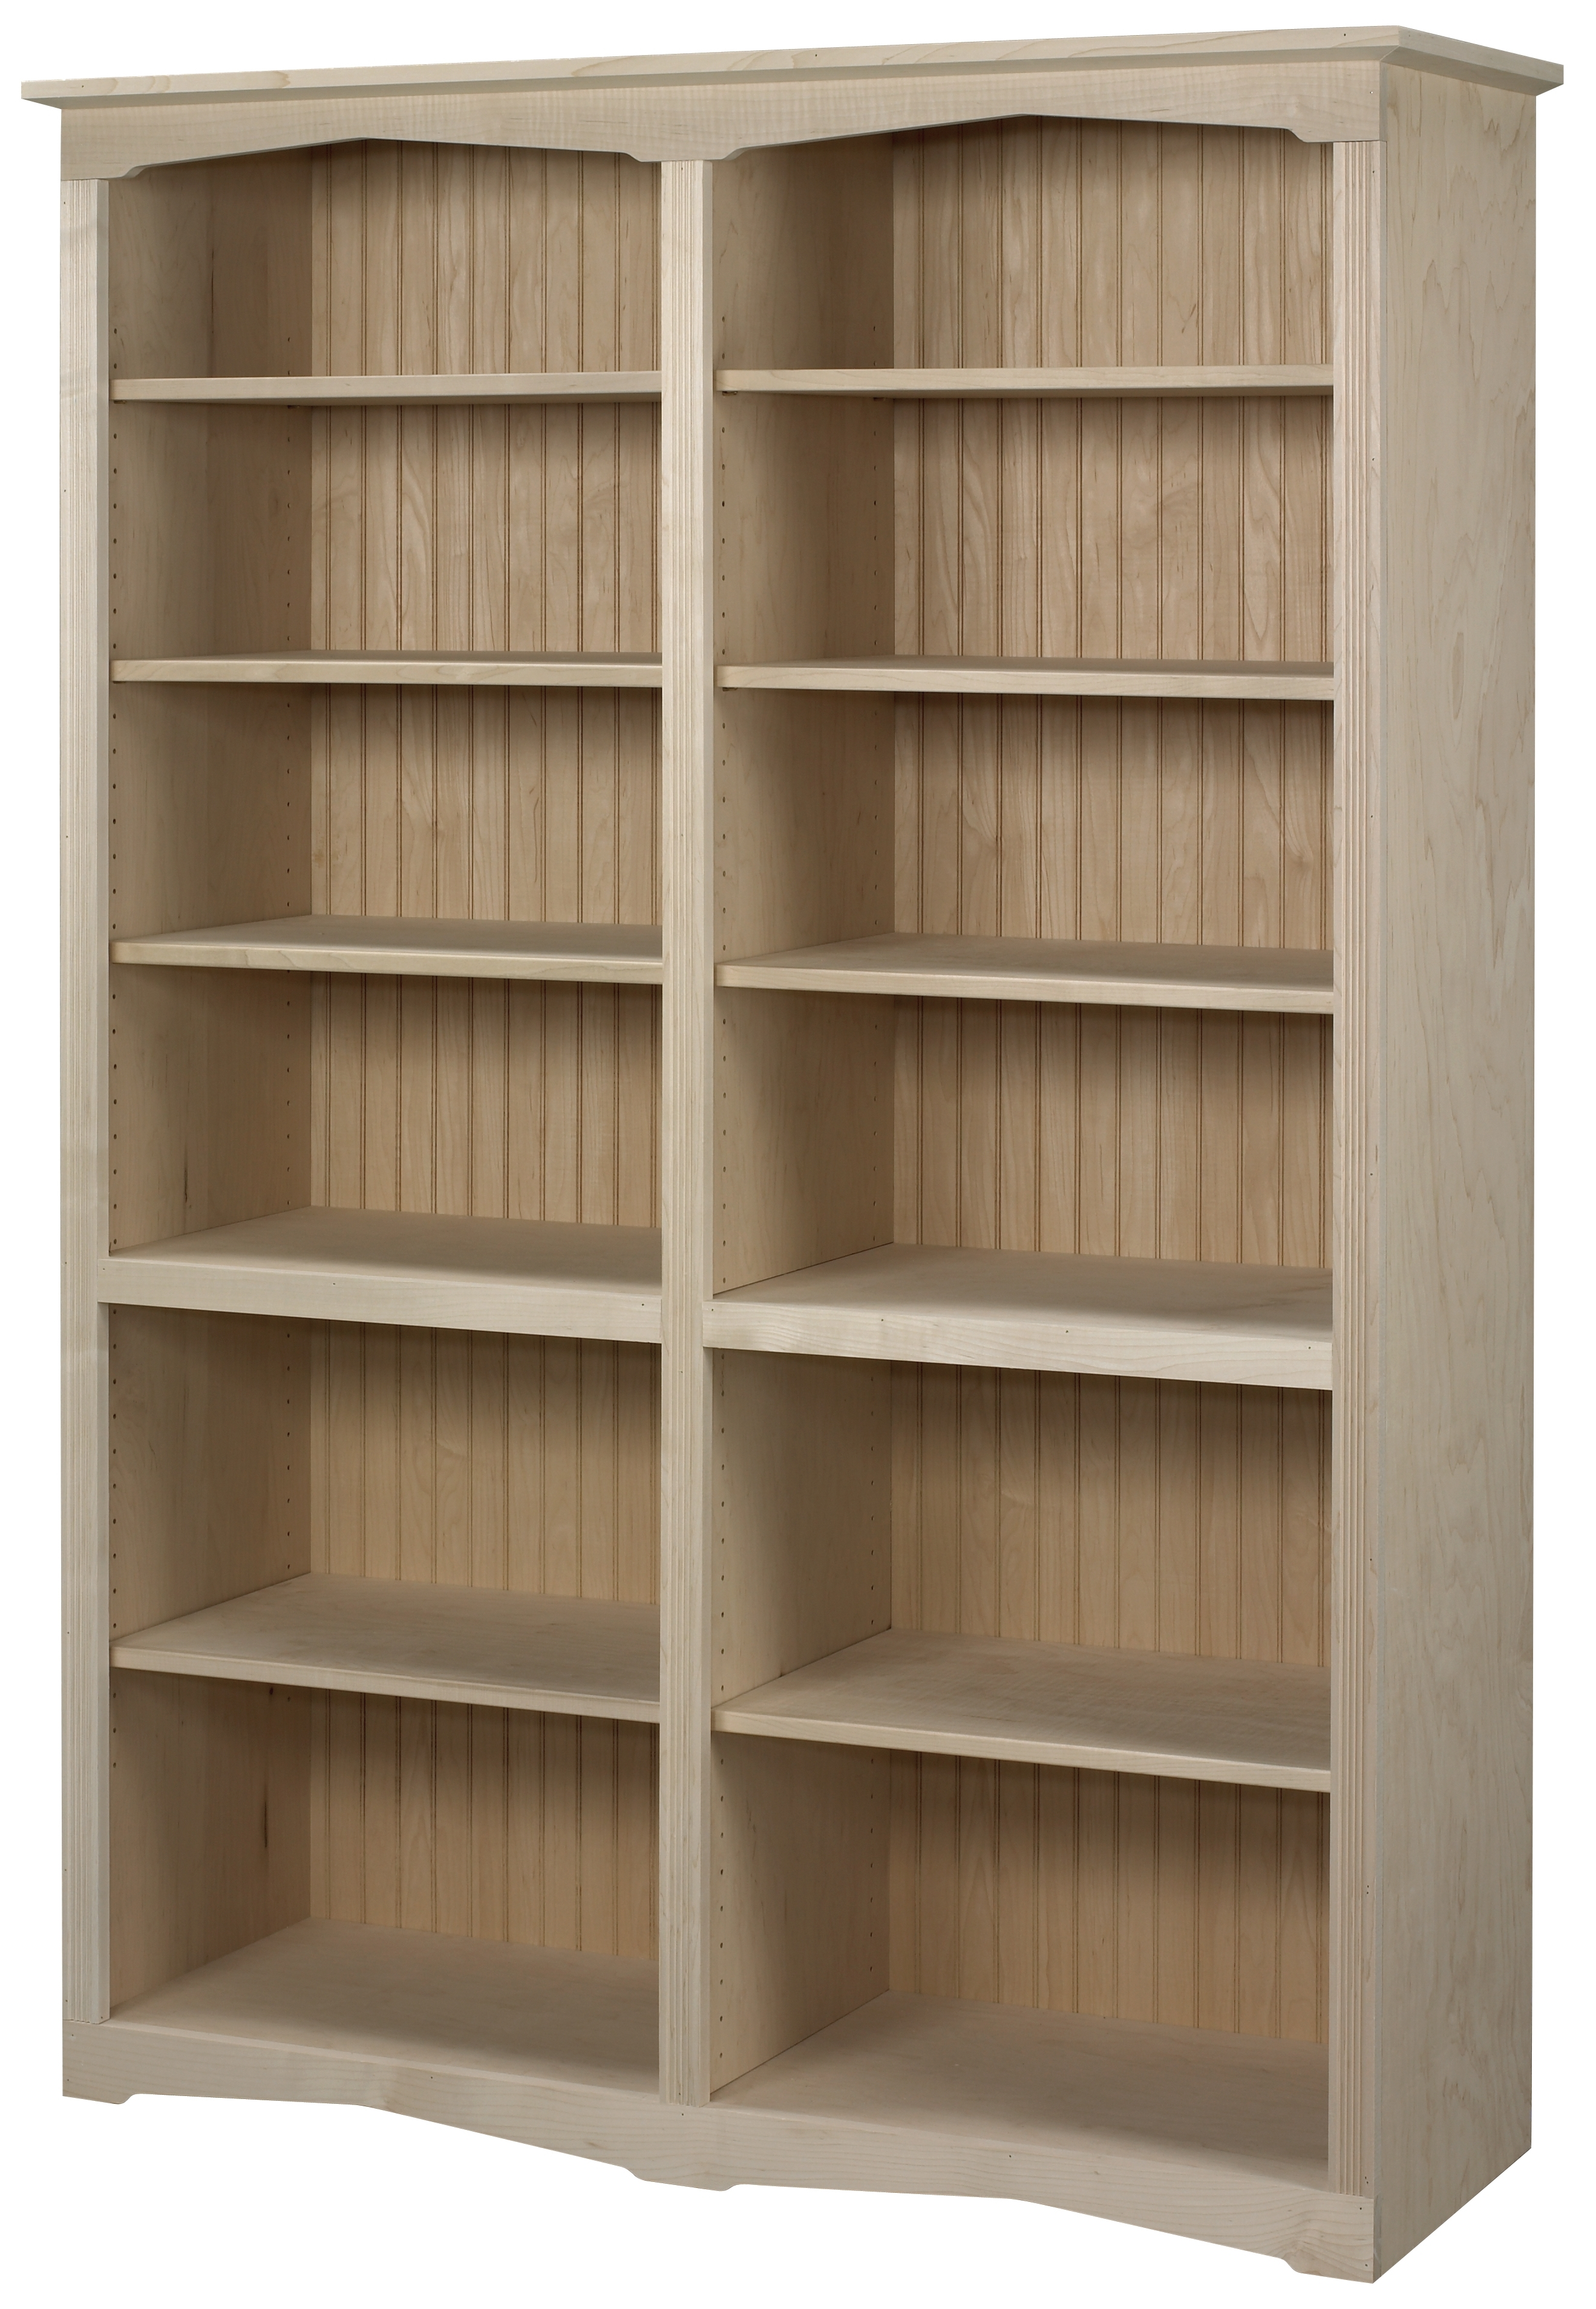 with bookcase shelf bookshelves adjustable leaning shelves tier espresso walmart wide clear short decoration stackable large inexpensive bookshelf black mainstays bamboo inch deep white